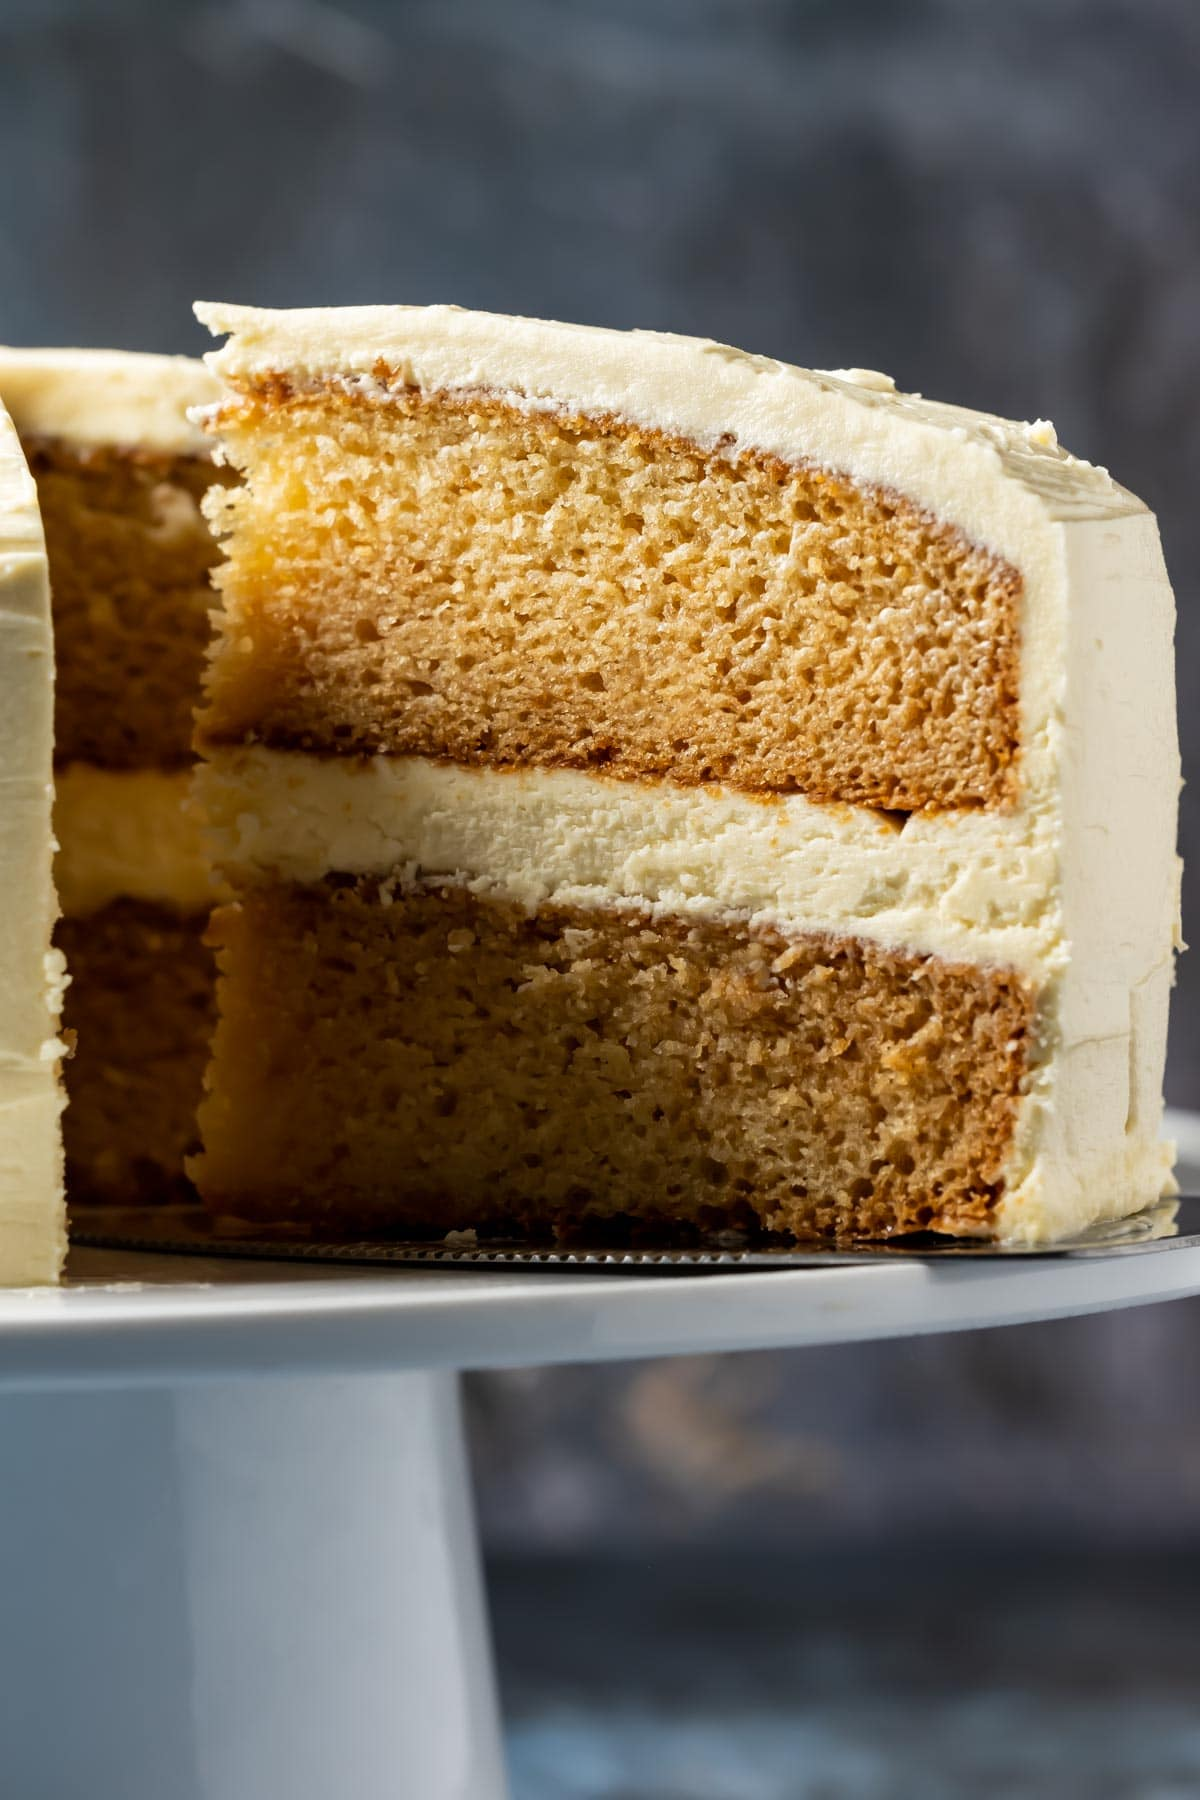 Vanilla cake on a white cake stand with one slice cut and ready to serve.